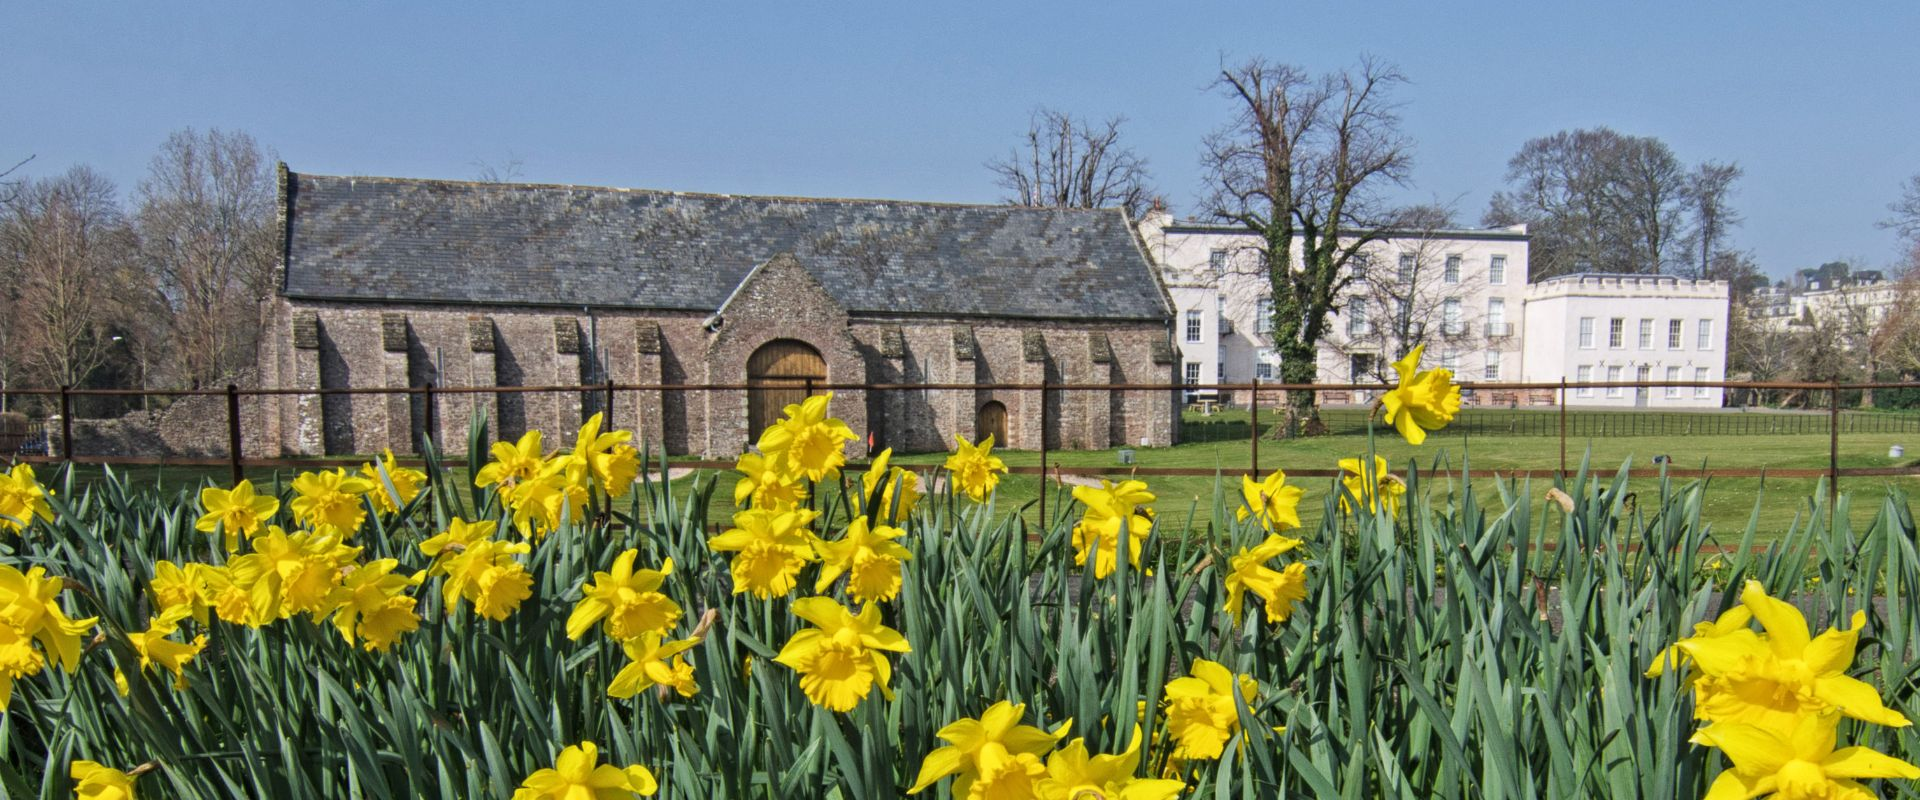 Daffodils in front of the Spanish Barn at Torre Abbey in Torquay